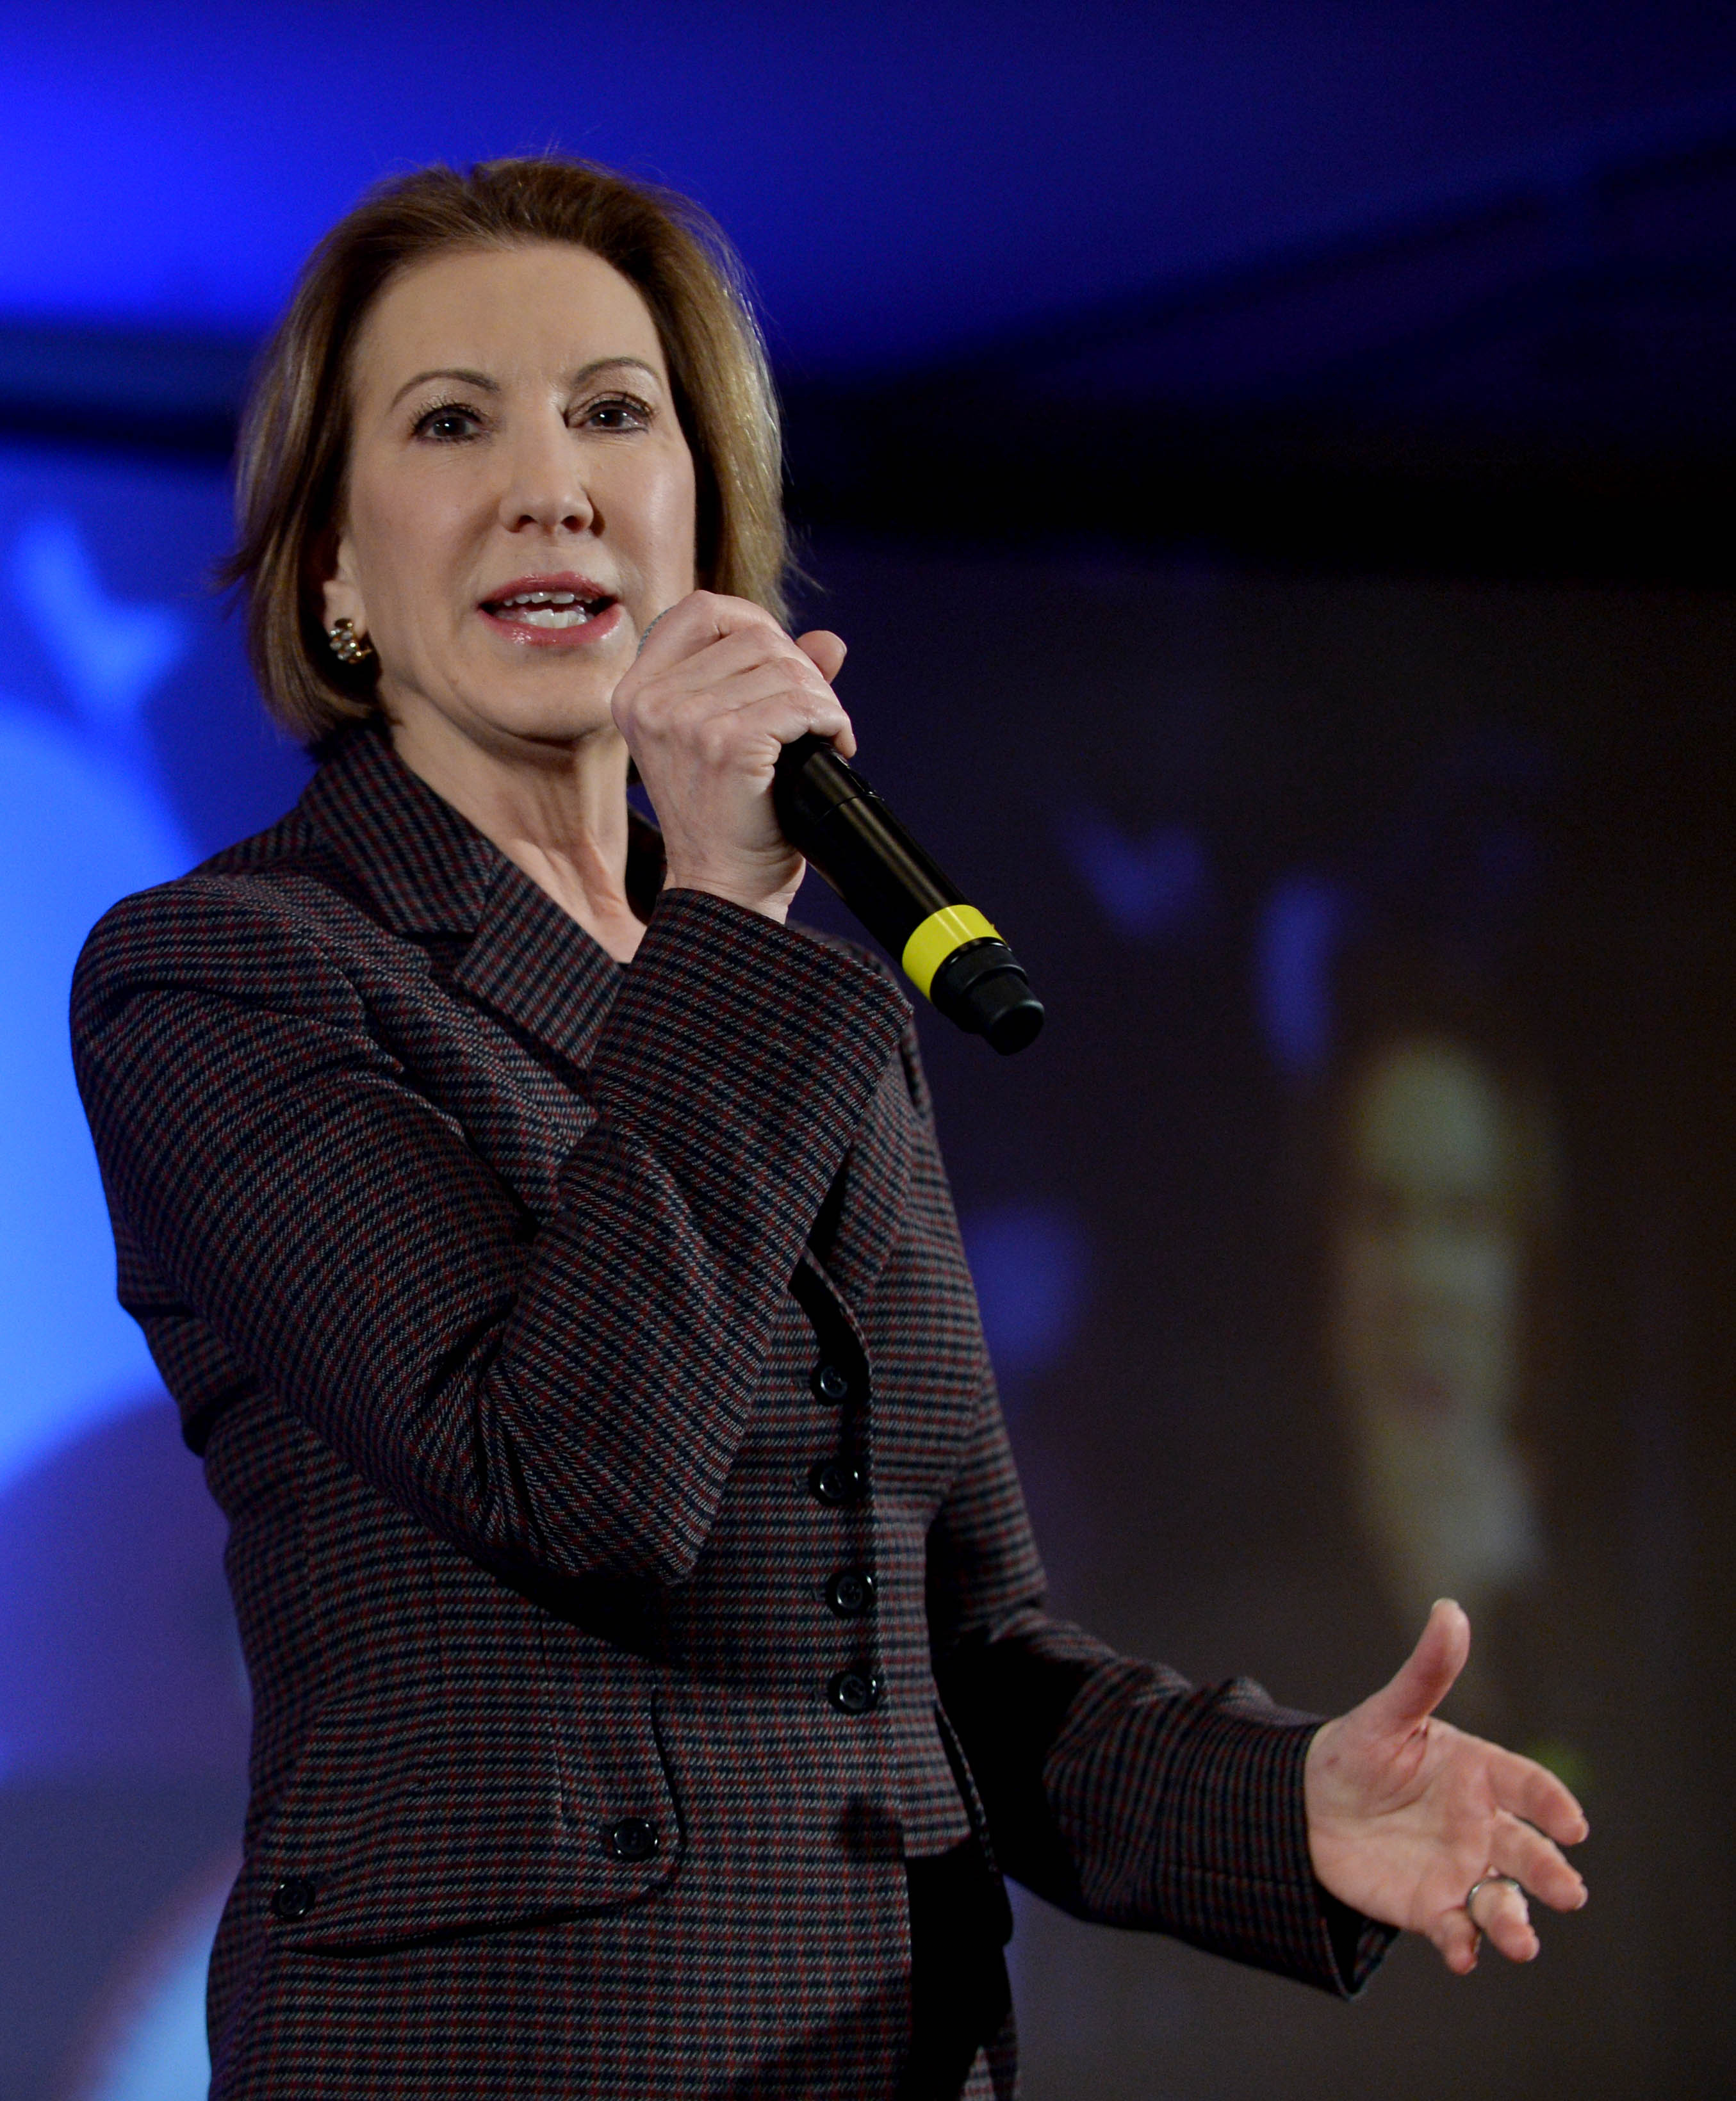 Republican presidential candidate Carly Fiorina speaks at the NHGOP First In The Nation Town Hall in Nashua, N.H., on Jan. 23, 2016.